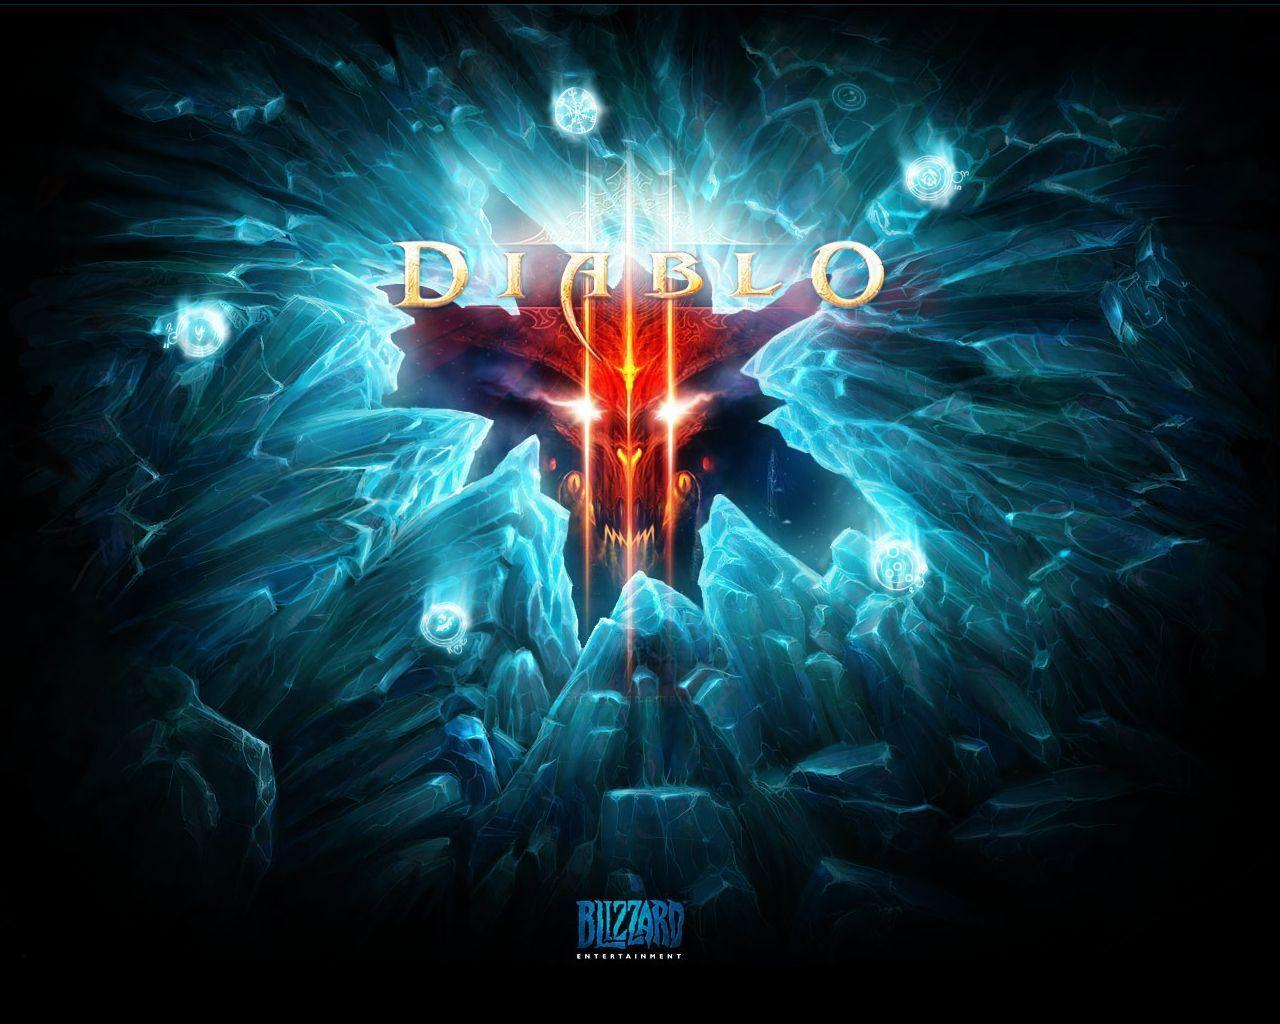 Diablo 3 Wallpaper - HD Wallpapers Download